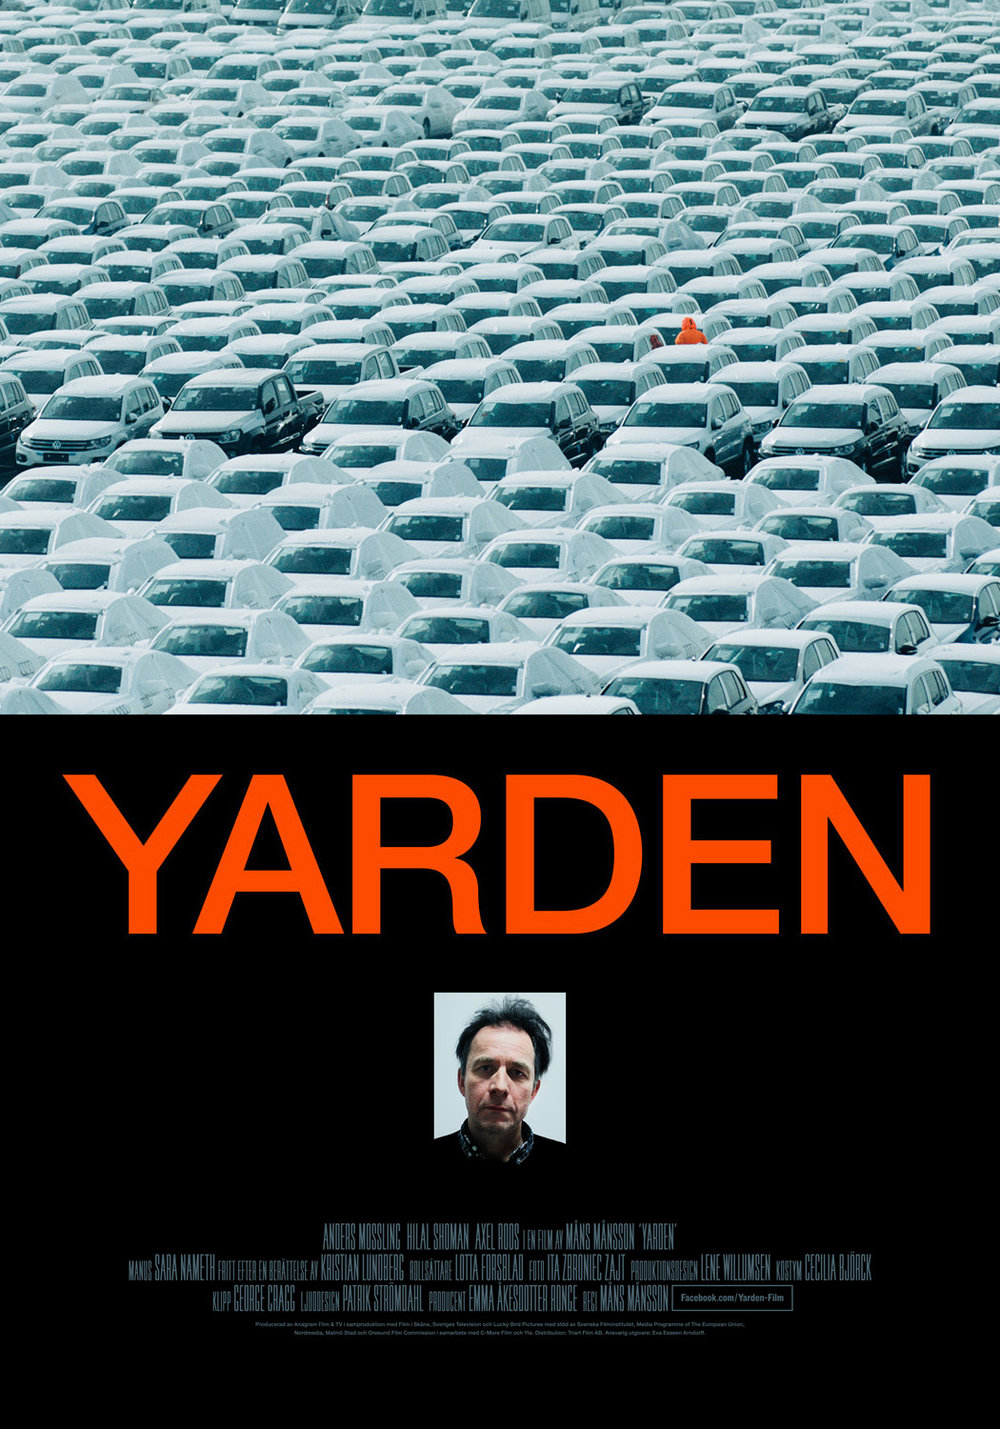 YARDEN Poster for Måns Månsson's feature film